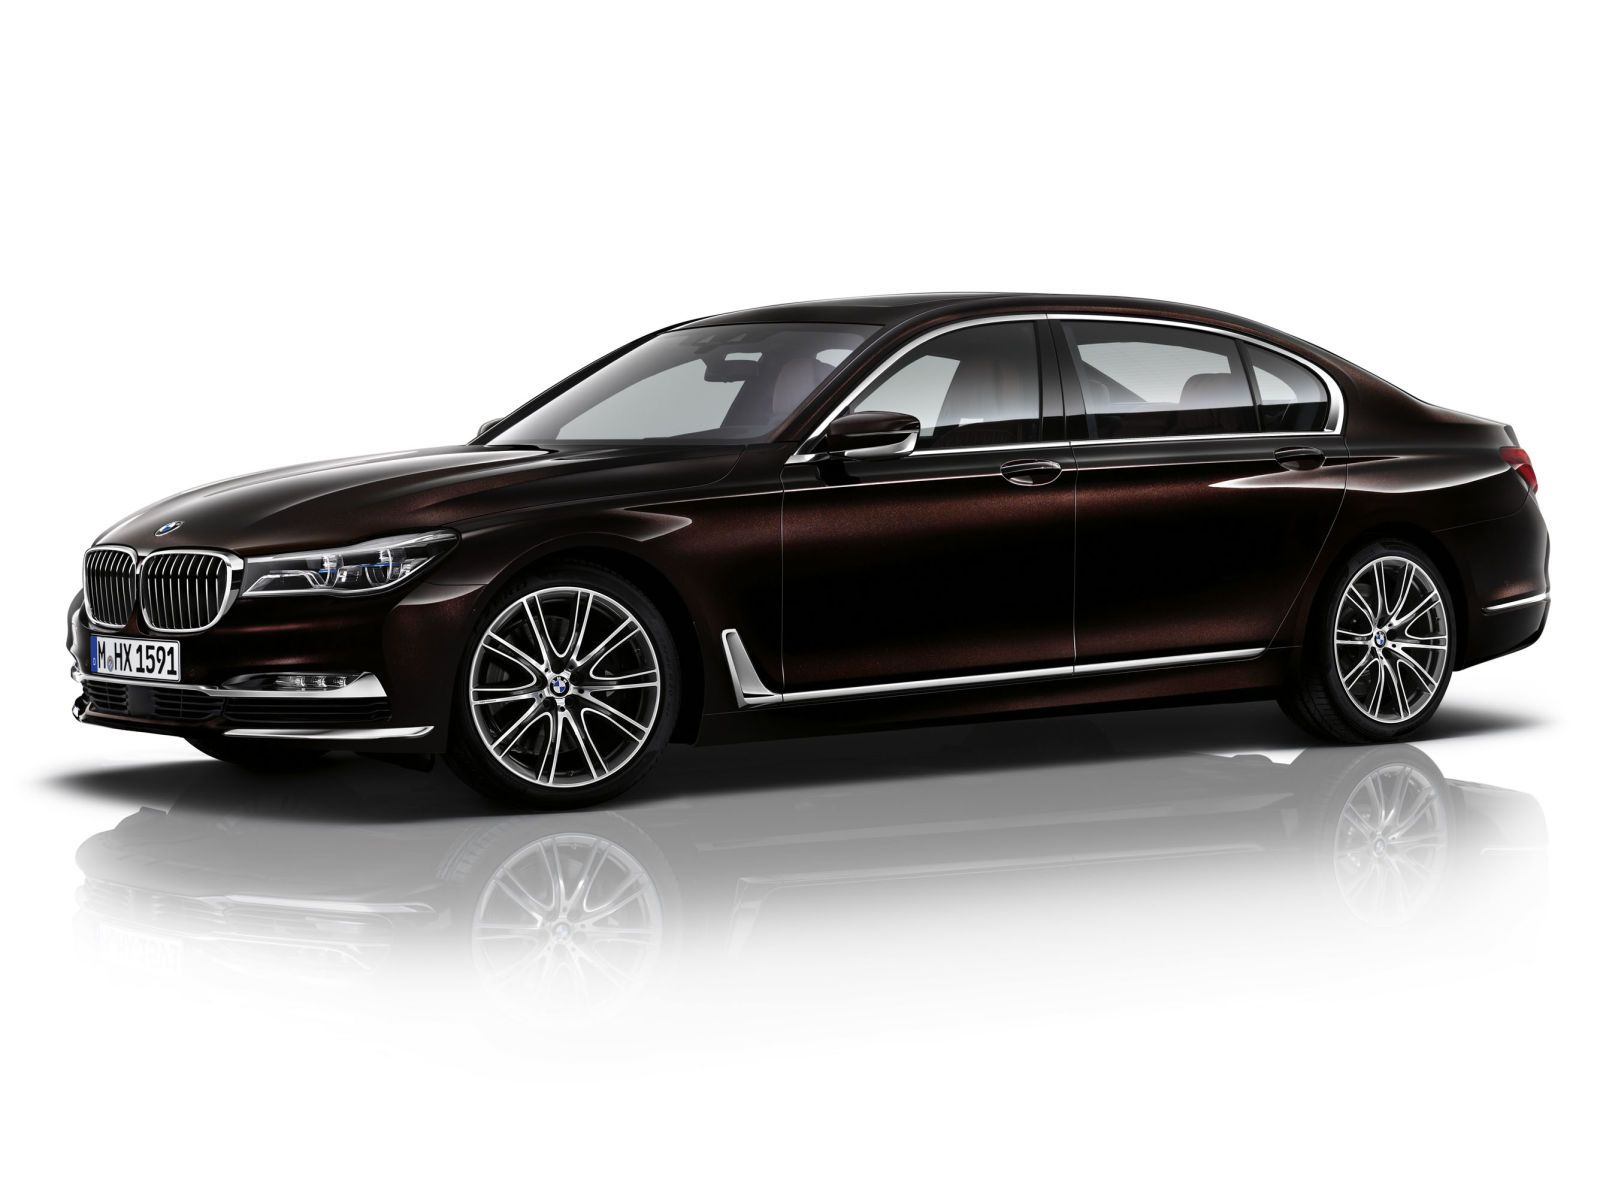 2016 Bmw 7 Series Official Photo Gallery Bmw 7 Series Bmw